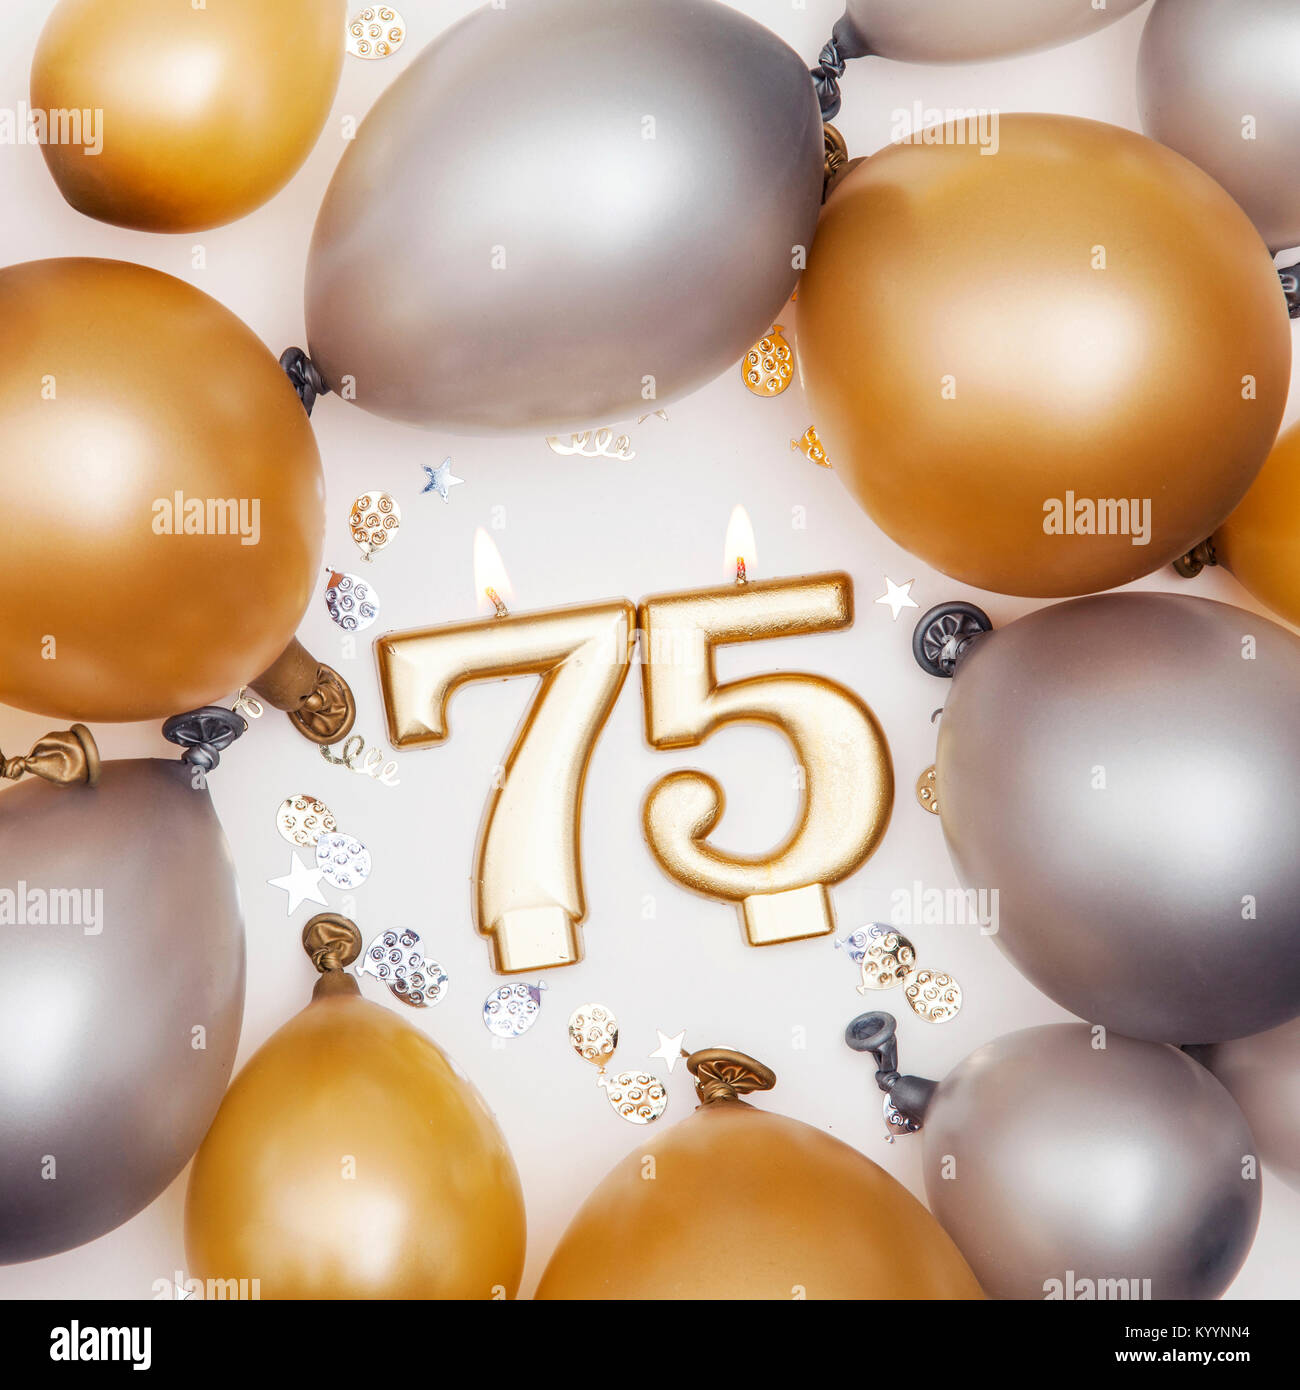 Birthday Celebration Number 75 Candle With Gold And Silver Balloons